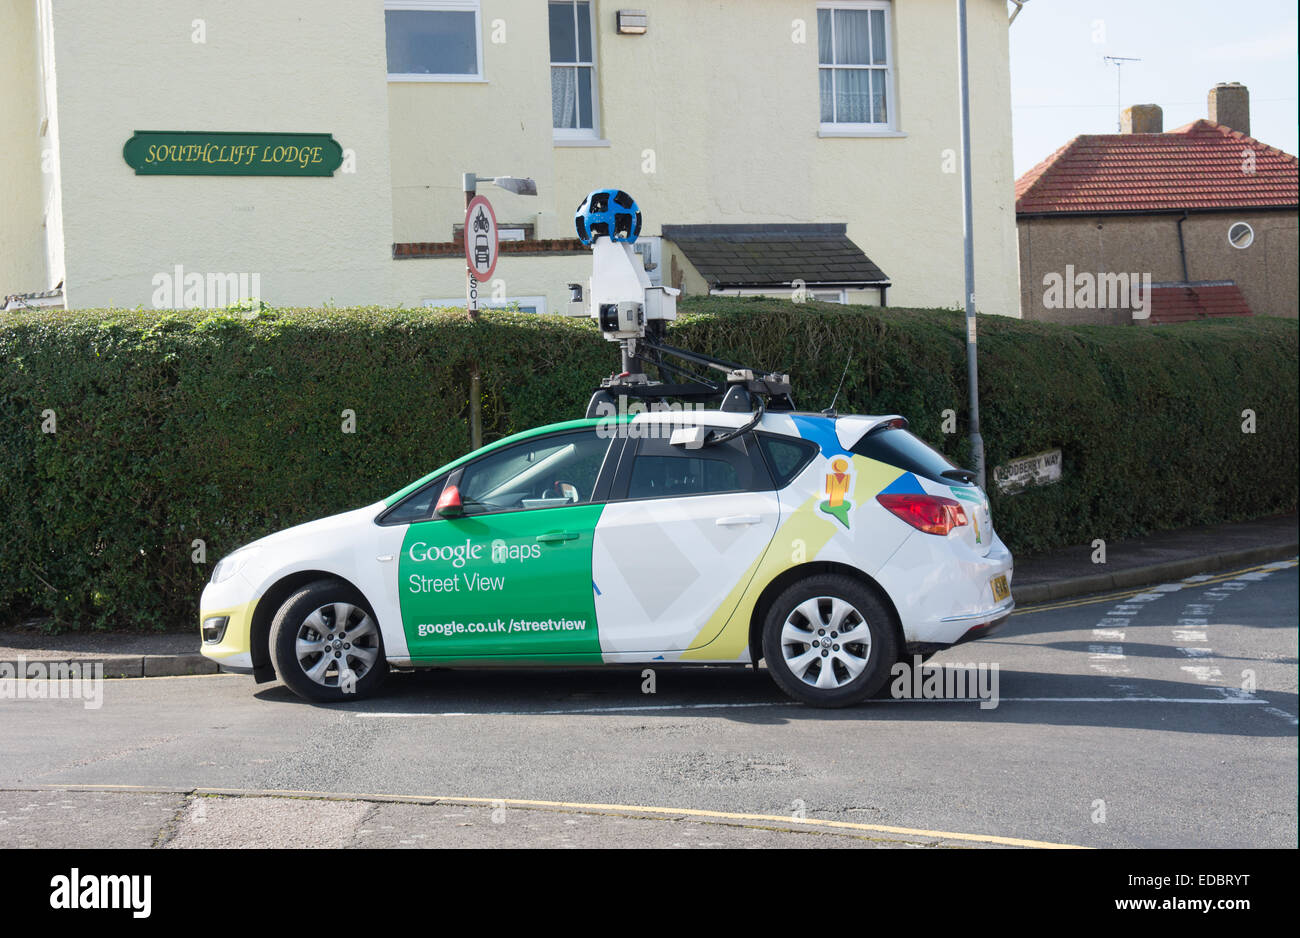 A Google street view map car completes its task in Walton-on-the-Naze, Essex - Stock Image